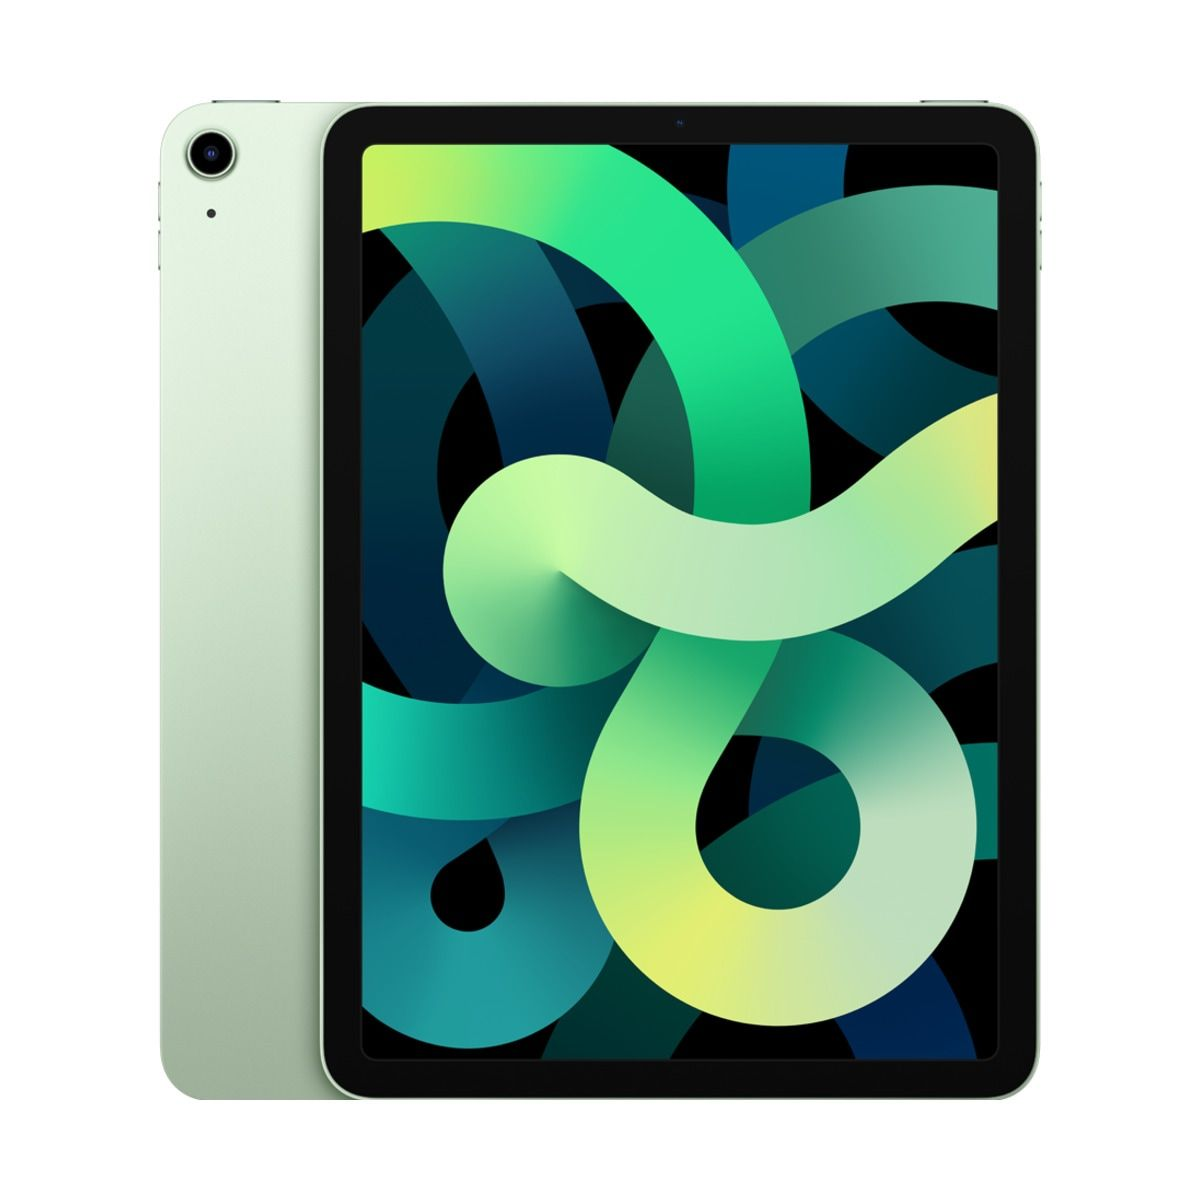 iPad Air Wi-Fi 64GB - Green / SK